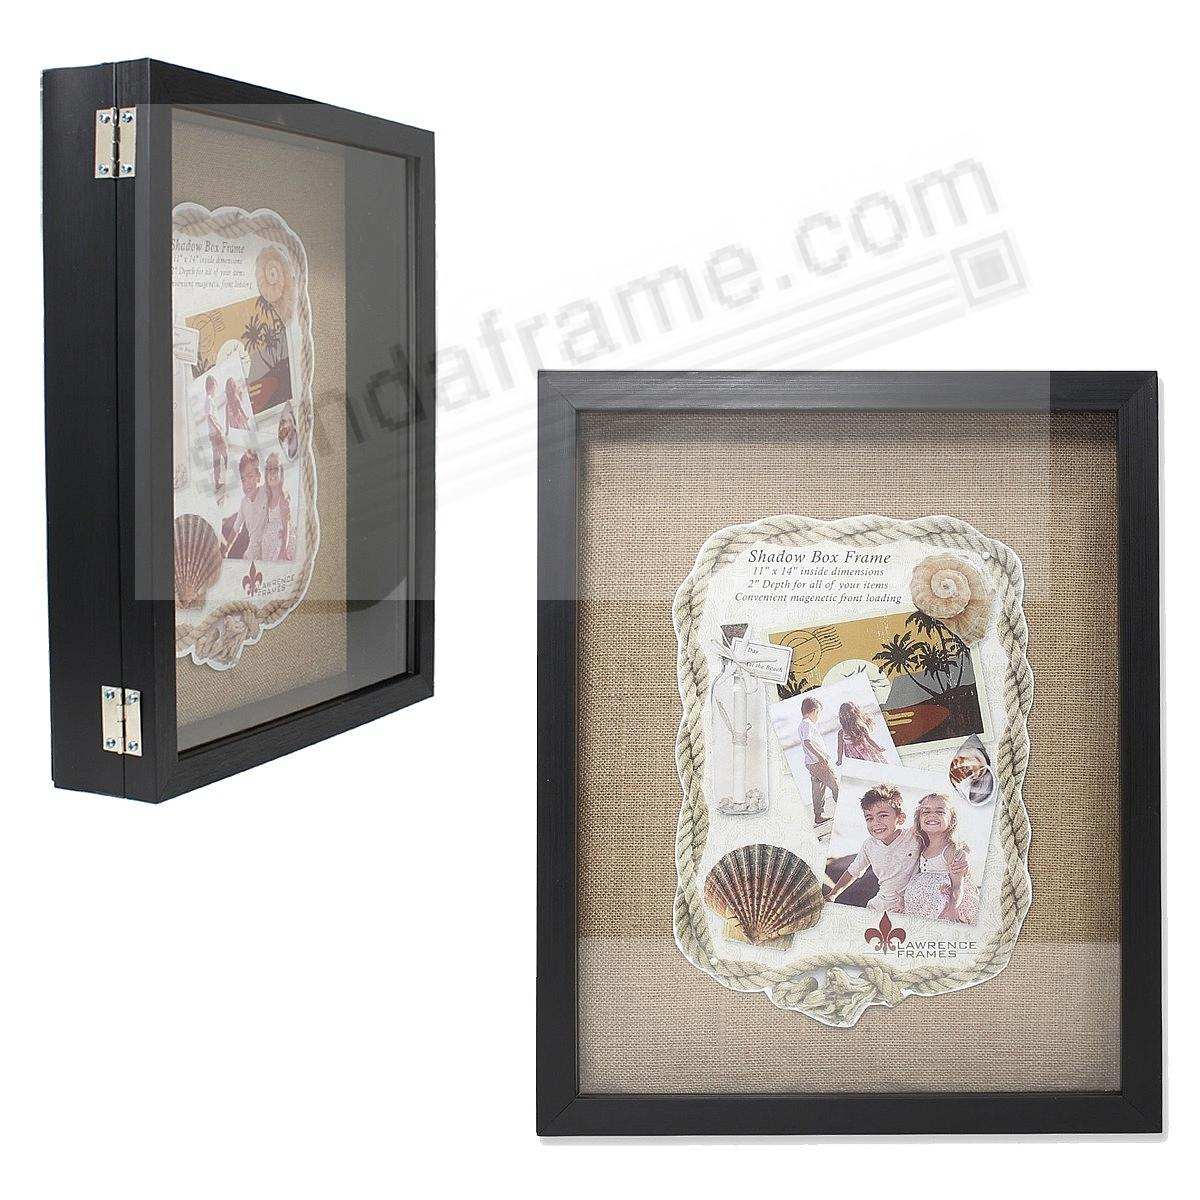 Black 2-in Depth Shadowbox w/magnetic lock front-opening 11x14 by Lawrence®